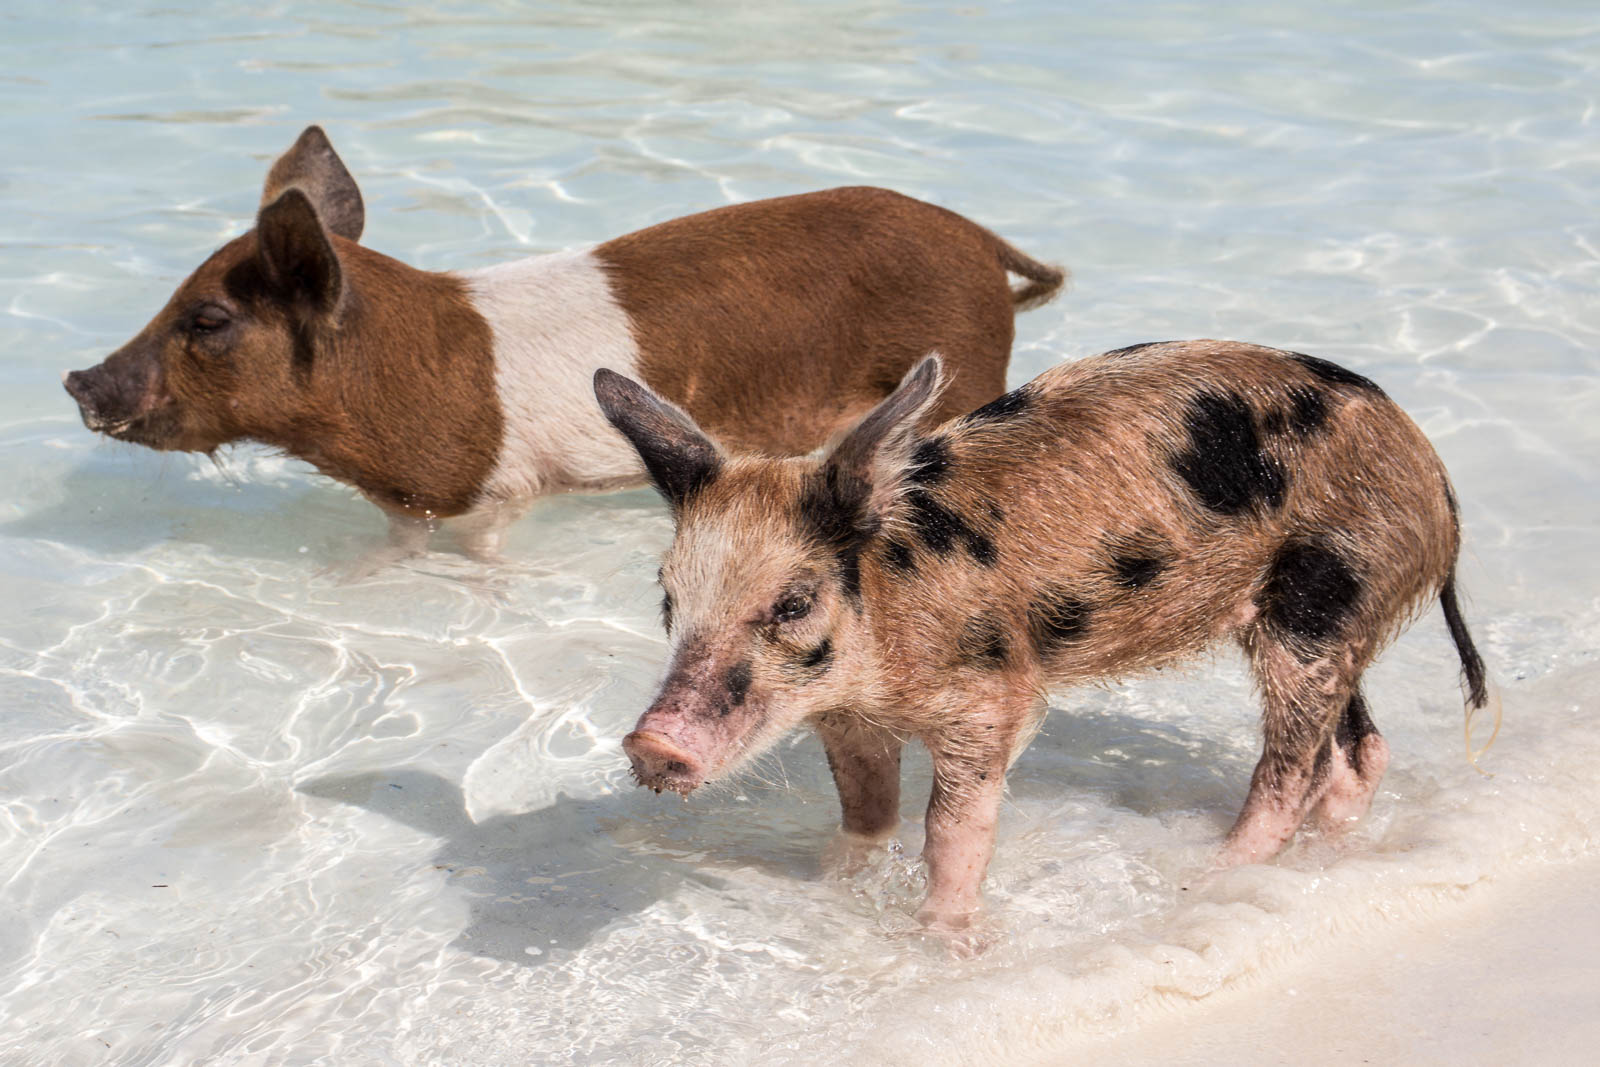 The Exuma pigs love the attention! Swimming pigs Exuma tours are usually busy, so arrive early. Book a swimming pigs bahamas tour today!